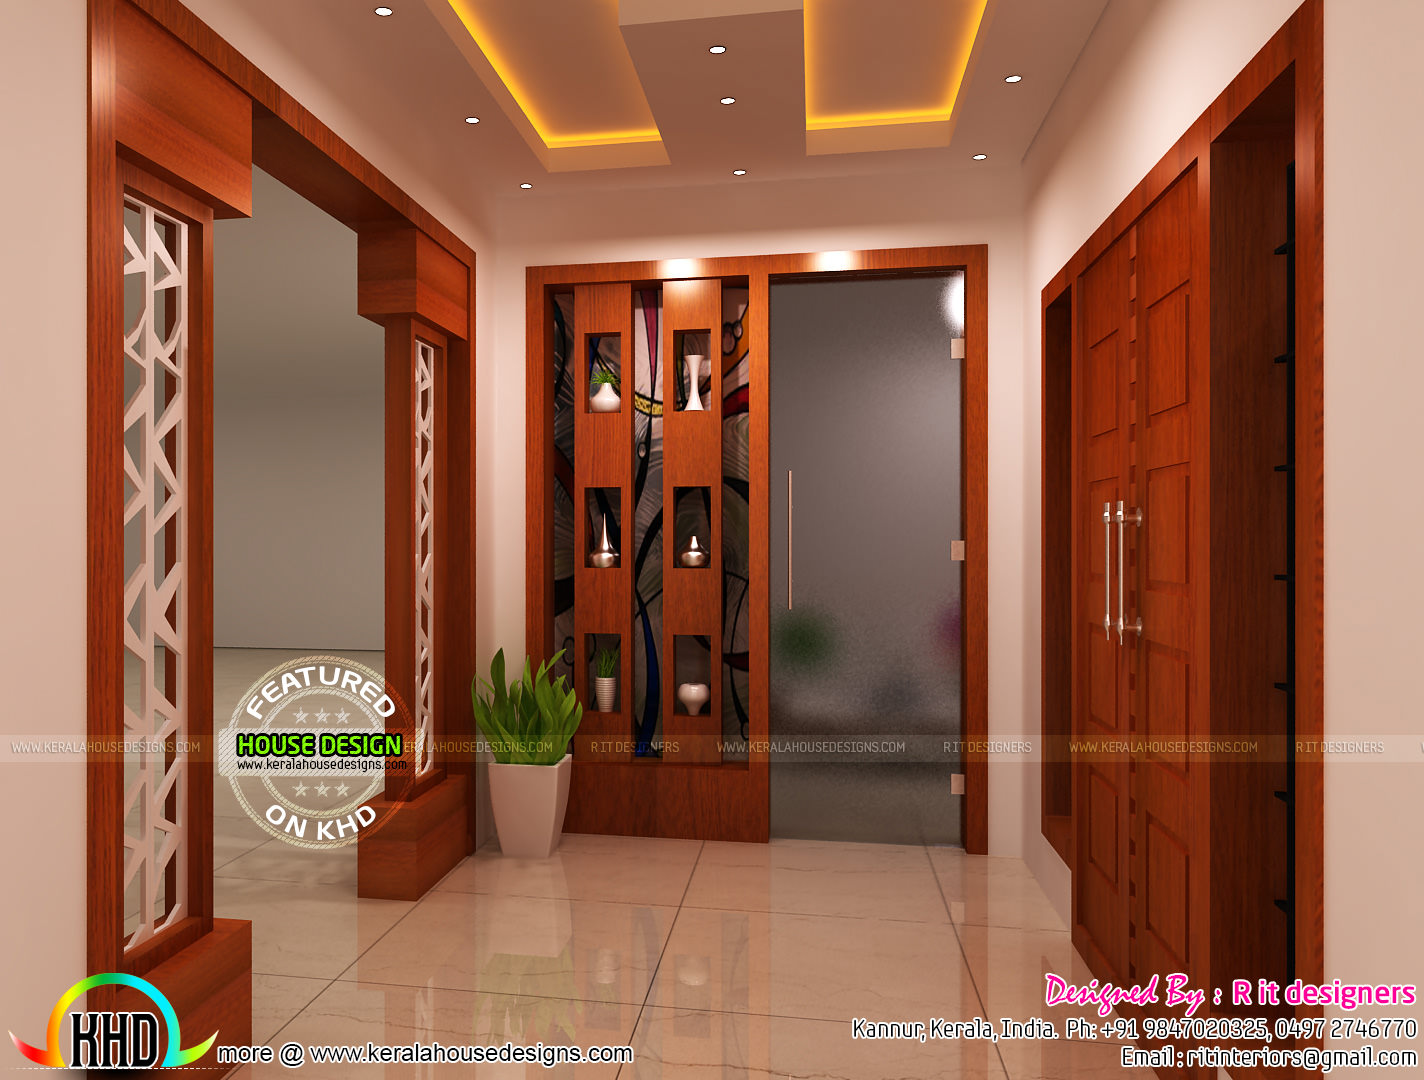 Bedroom kitchen living and foyer interiors kerala home Low cost interior design ideas india